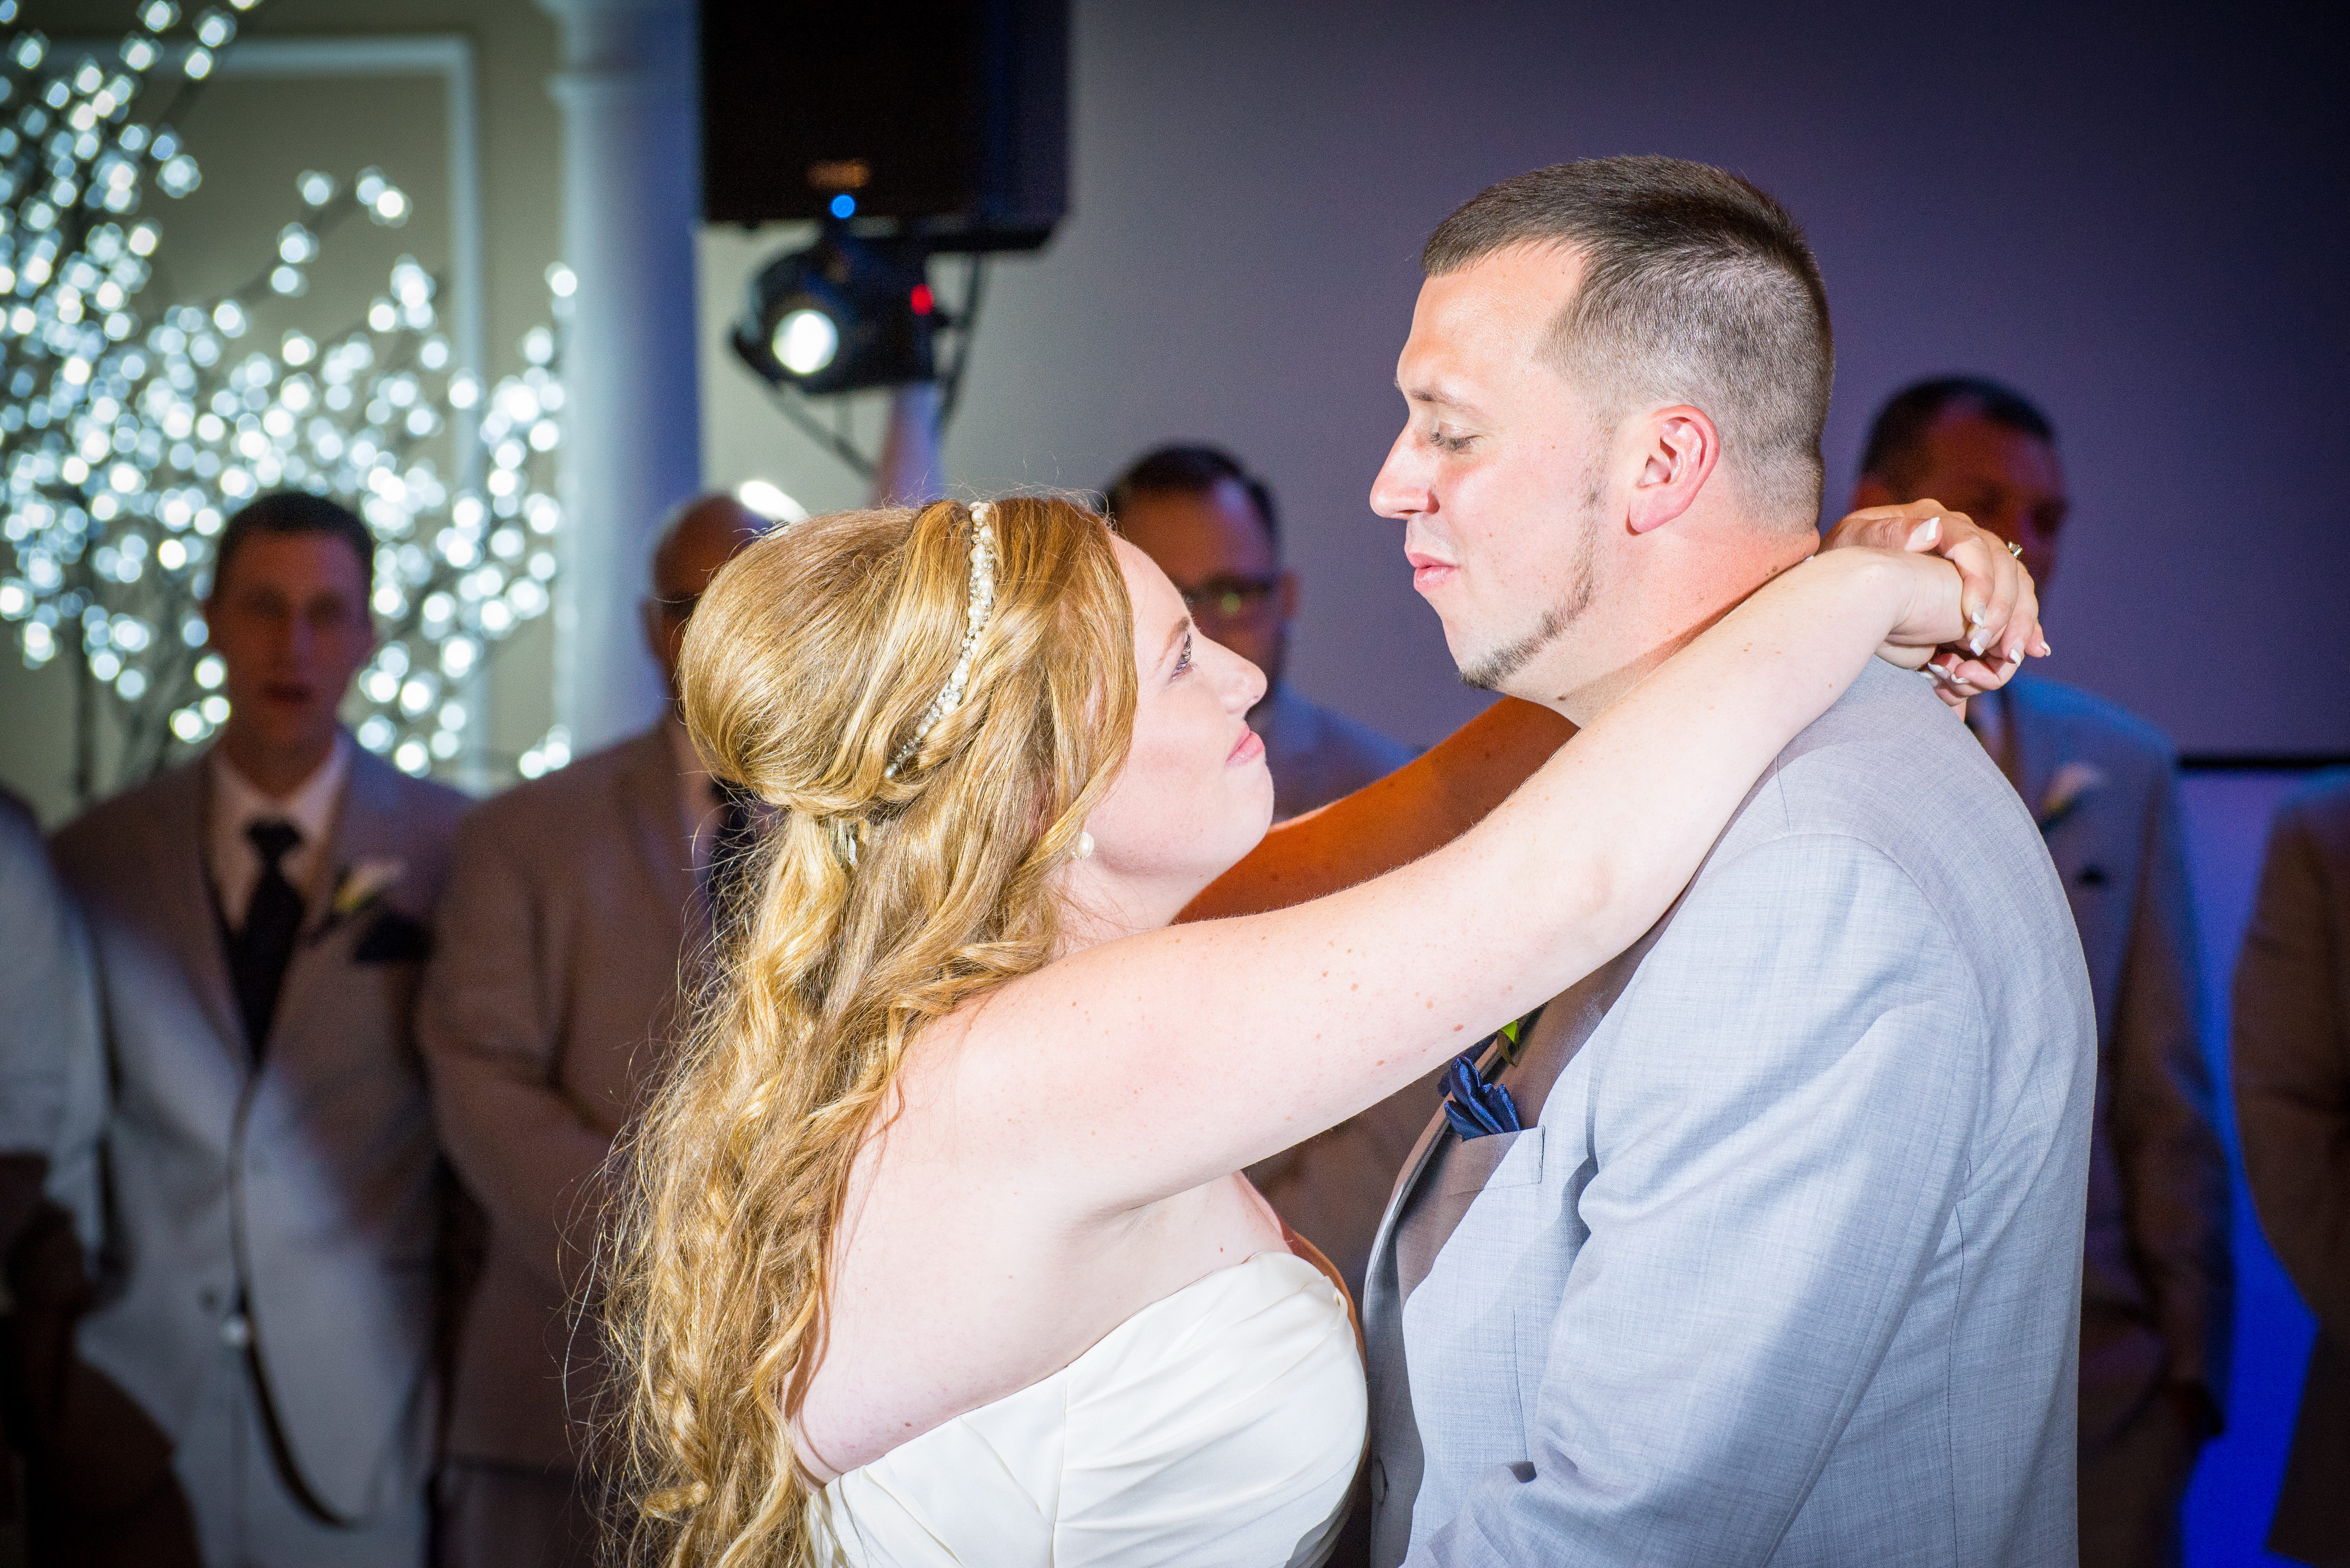 Wedding Spotlight first dance at Doolan's Shore Club in Spring Lake Nj Appalachian Entertainment dj's